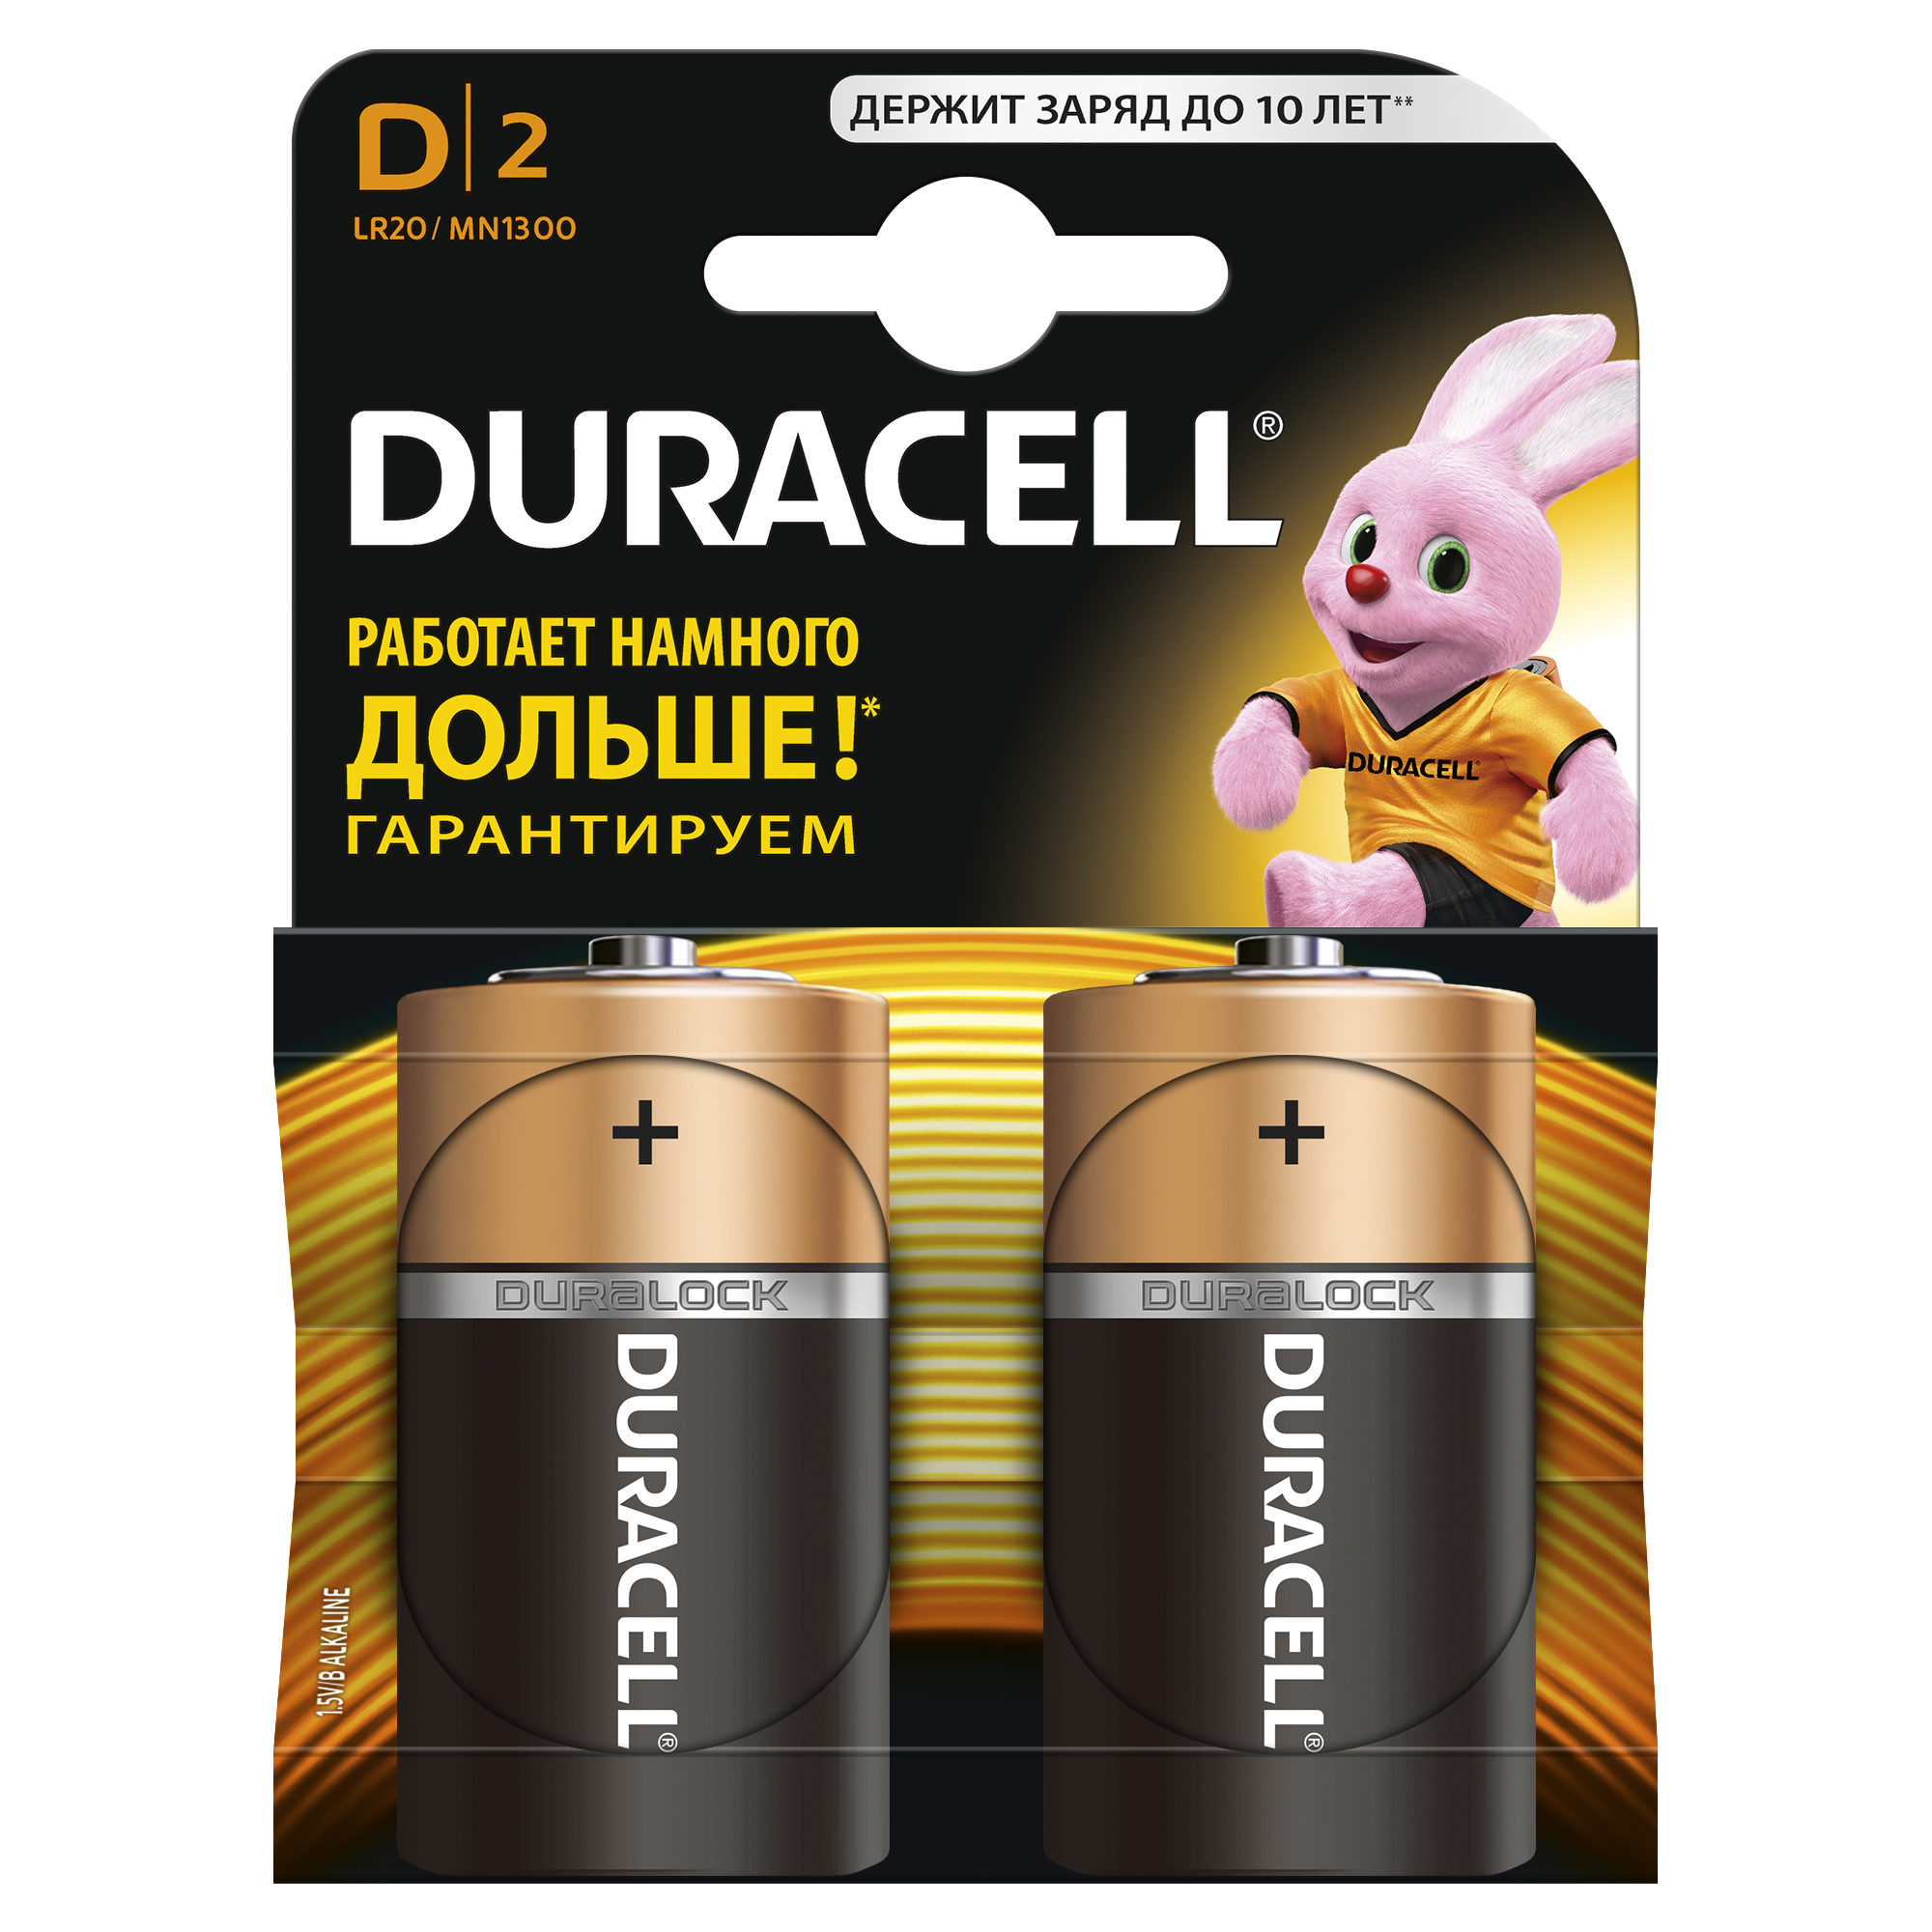 Батарейка Duracell LR20-2BL батарейки varta superlife d lr20 d 2 шт